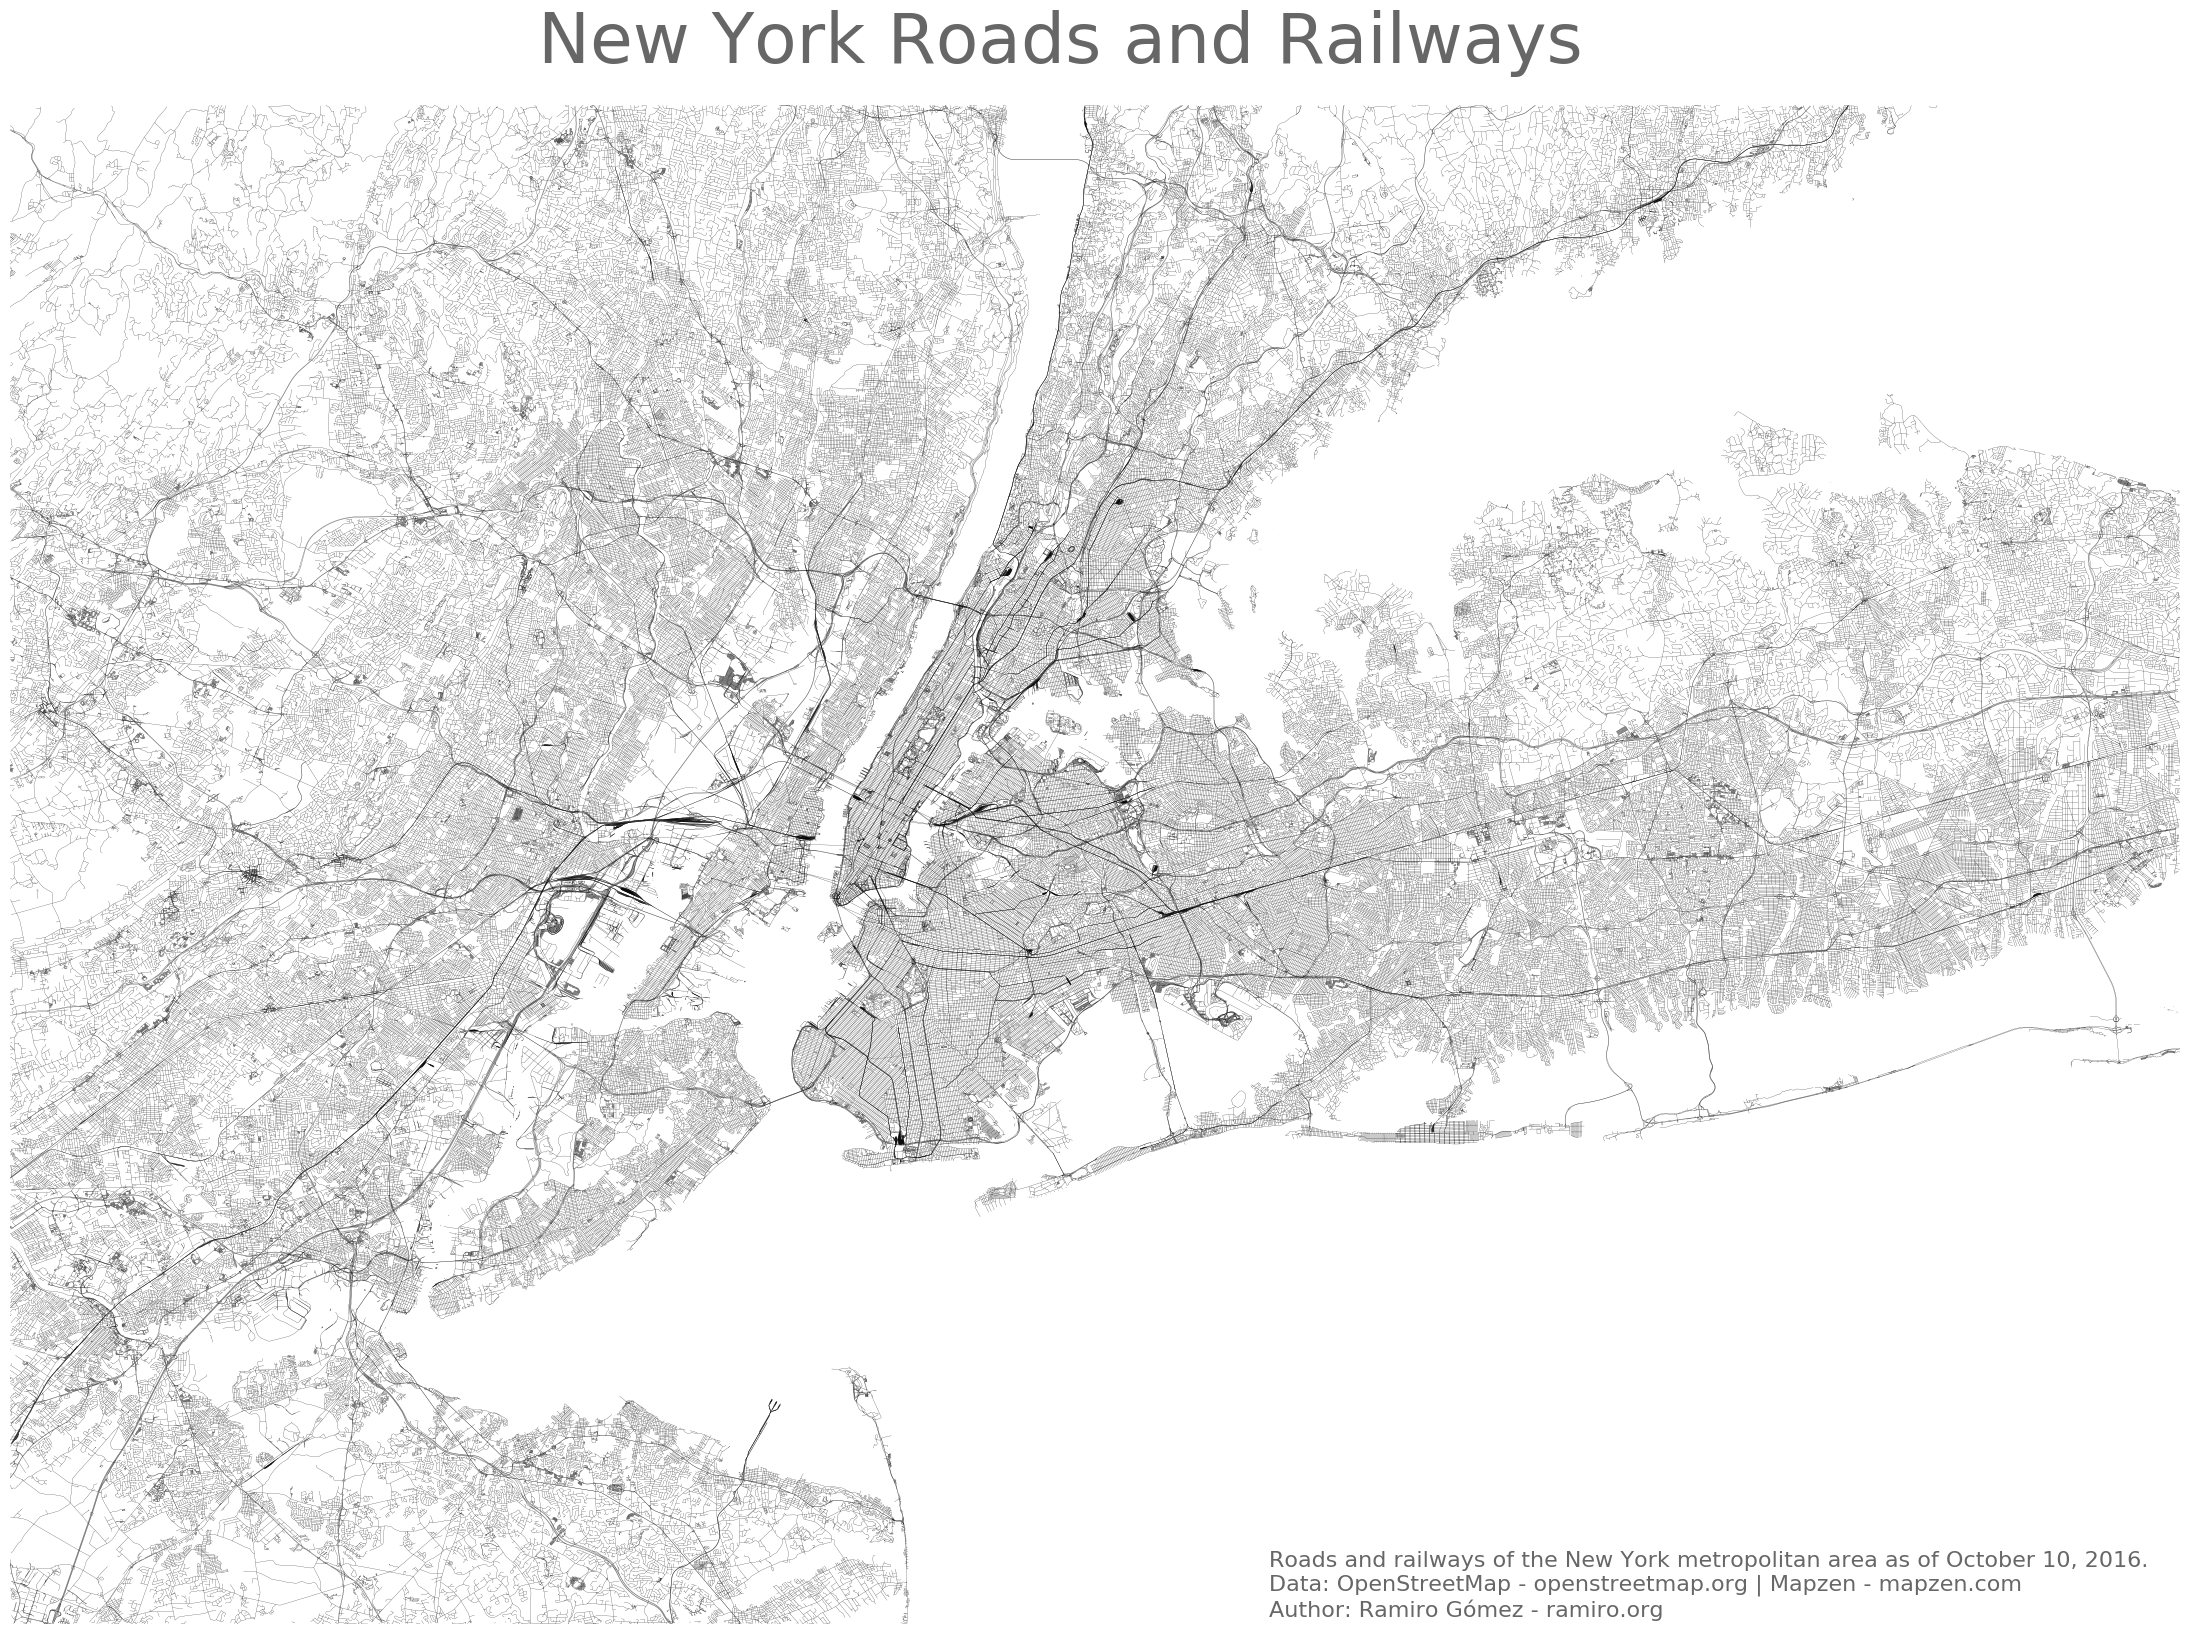 Creating a Road Map of New York in Python using Basemap • Jupyter